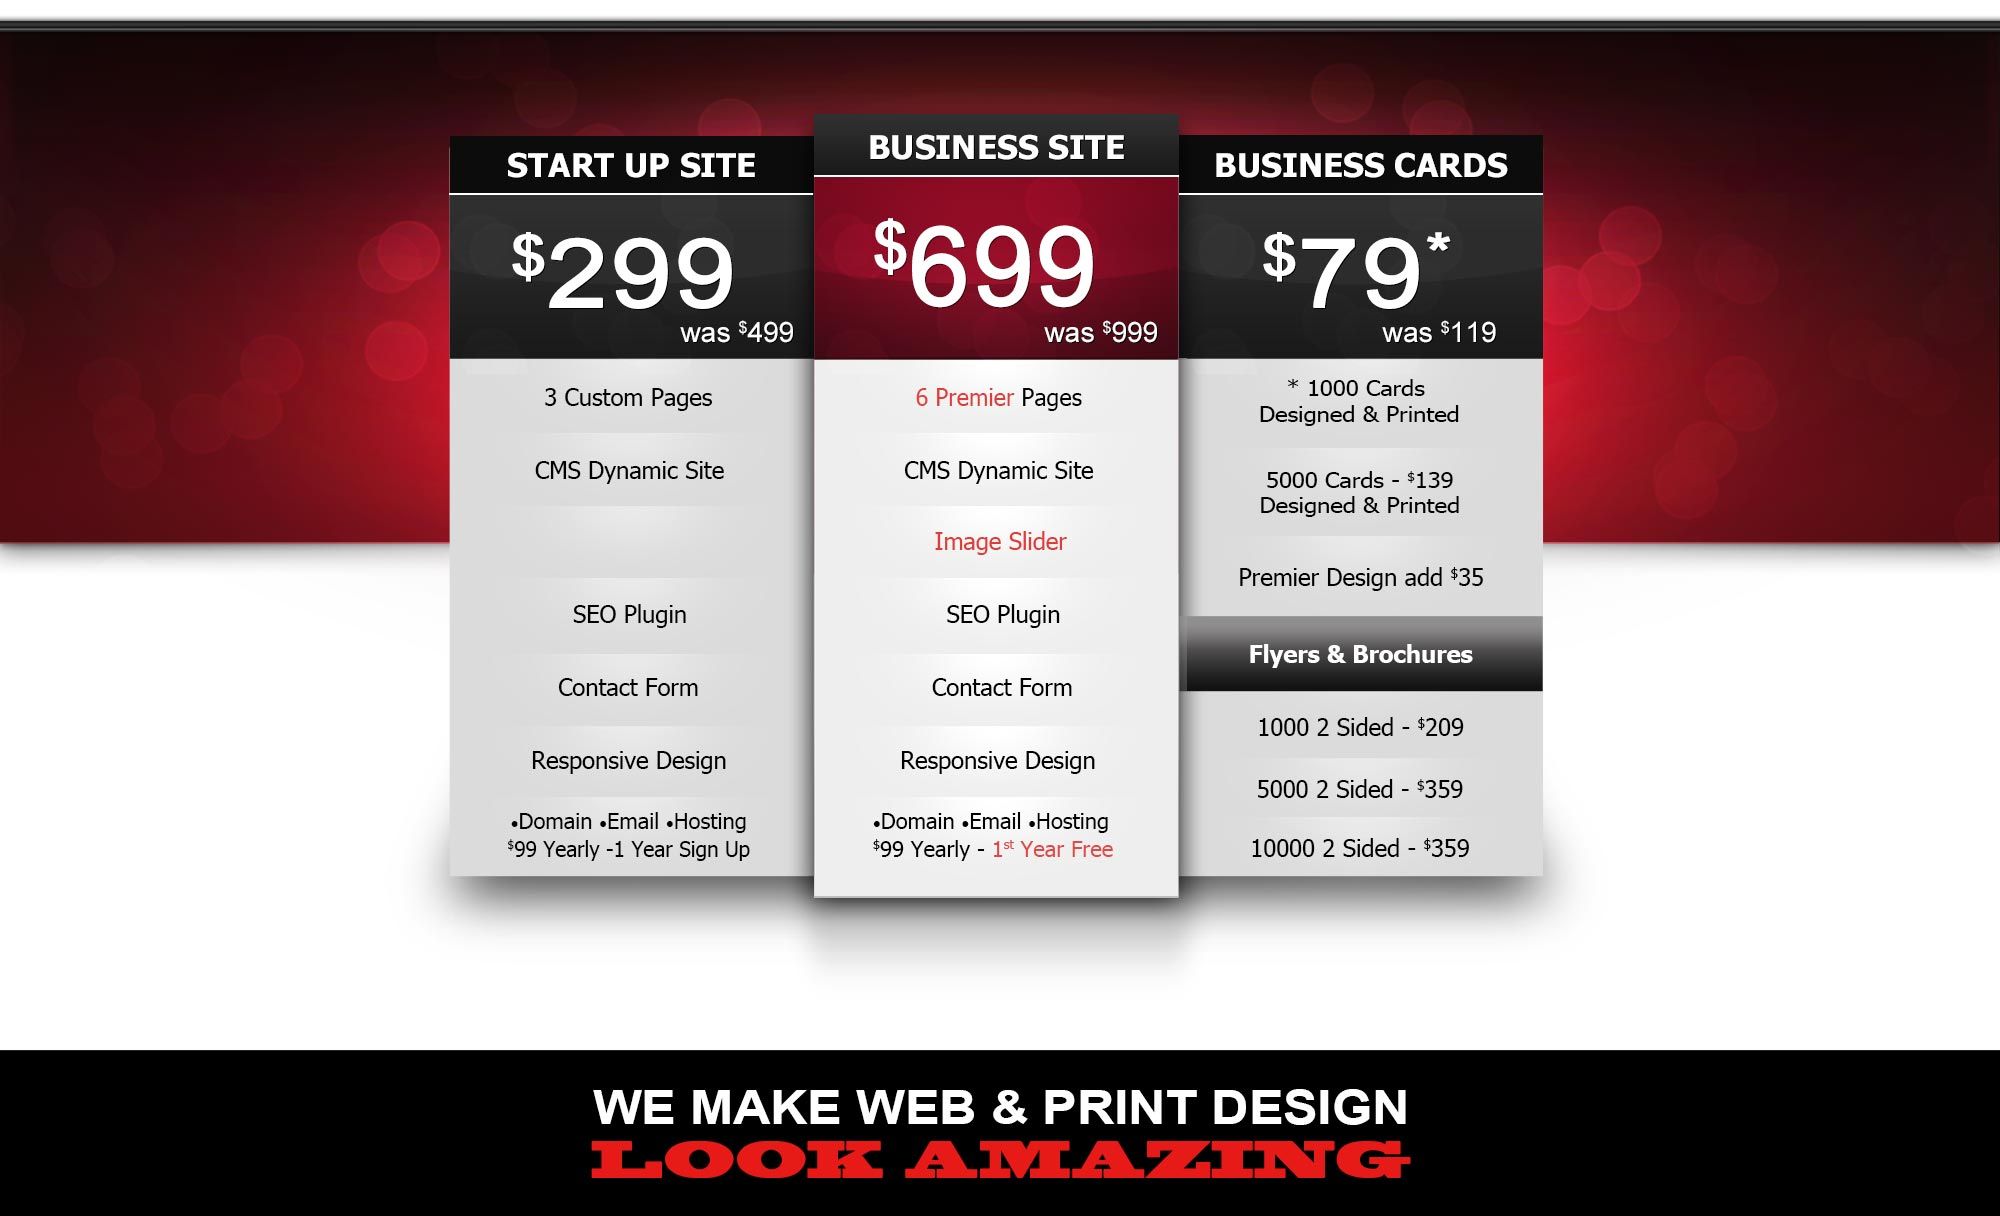 Pricing for website design services in newmarket